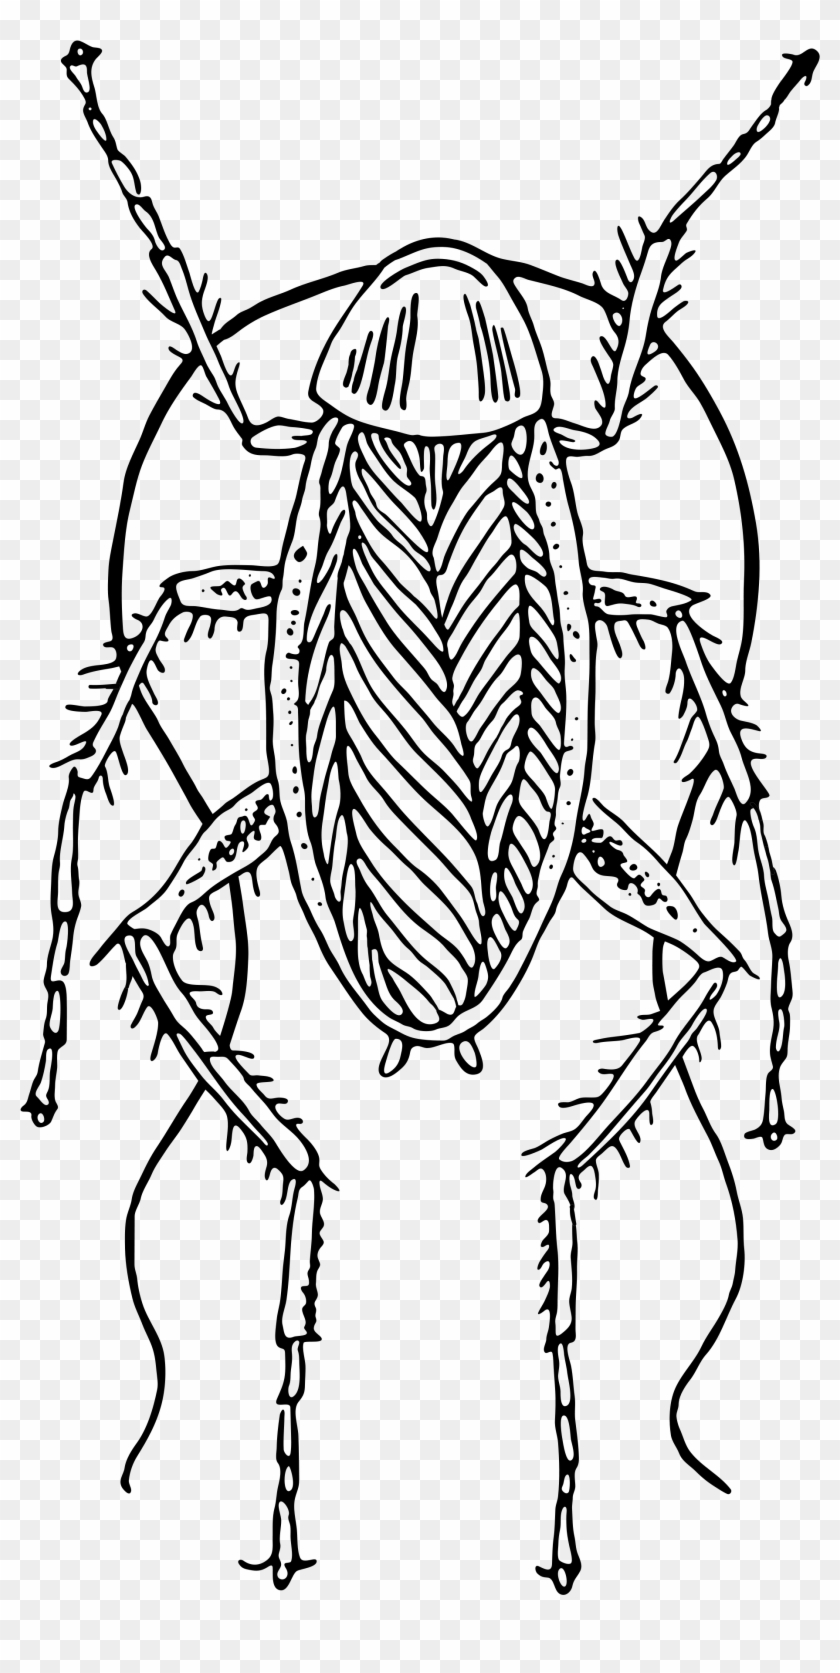 2000 X 3890 6 - Cockroach Black And White Png Clipart #144997